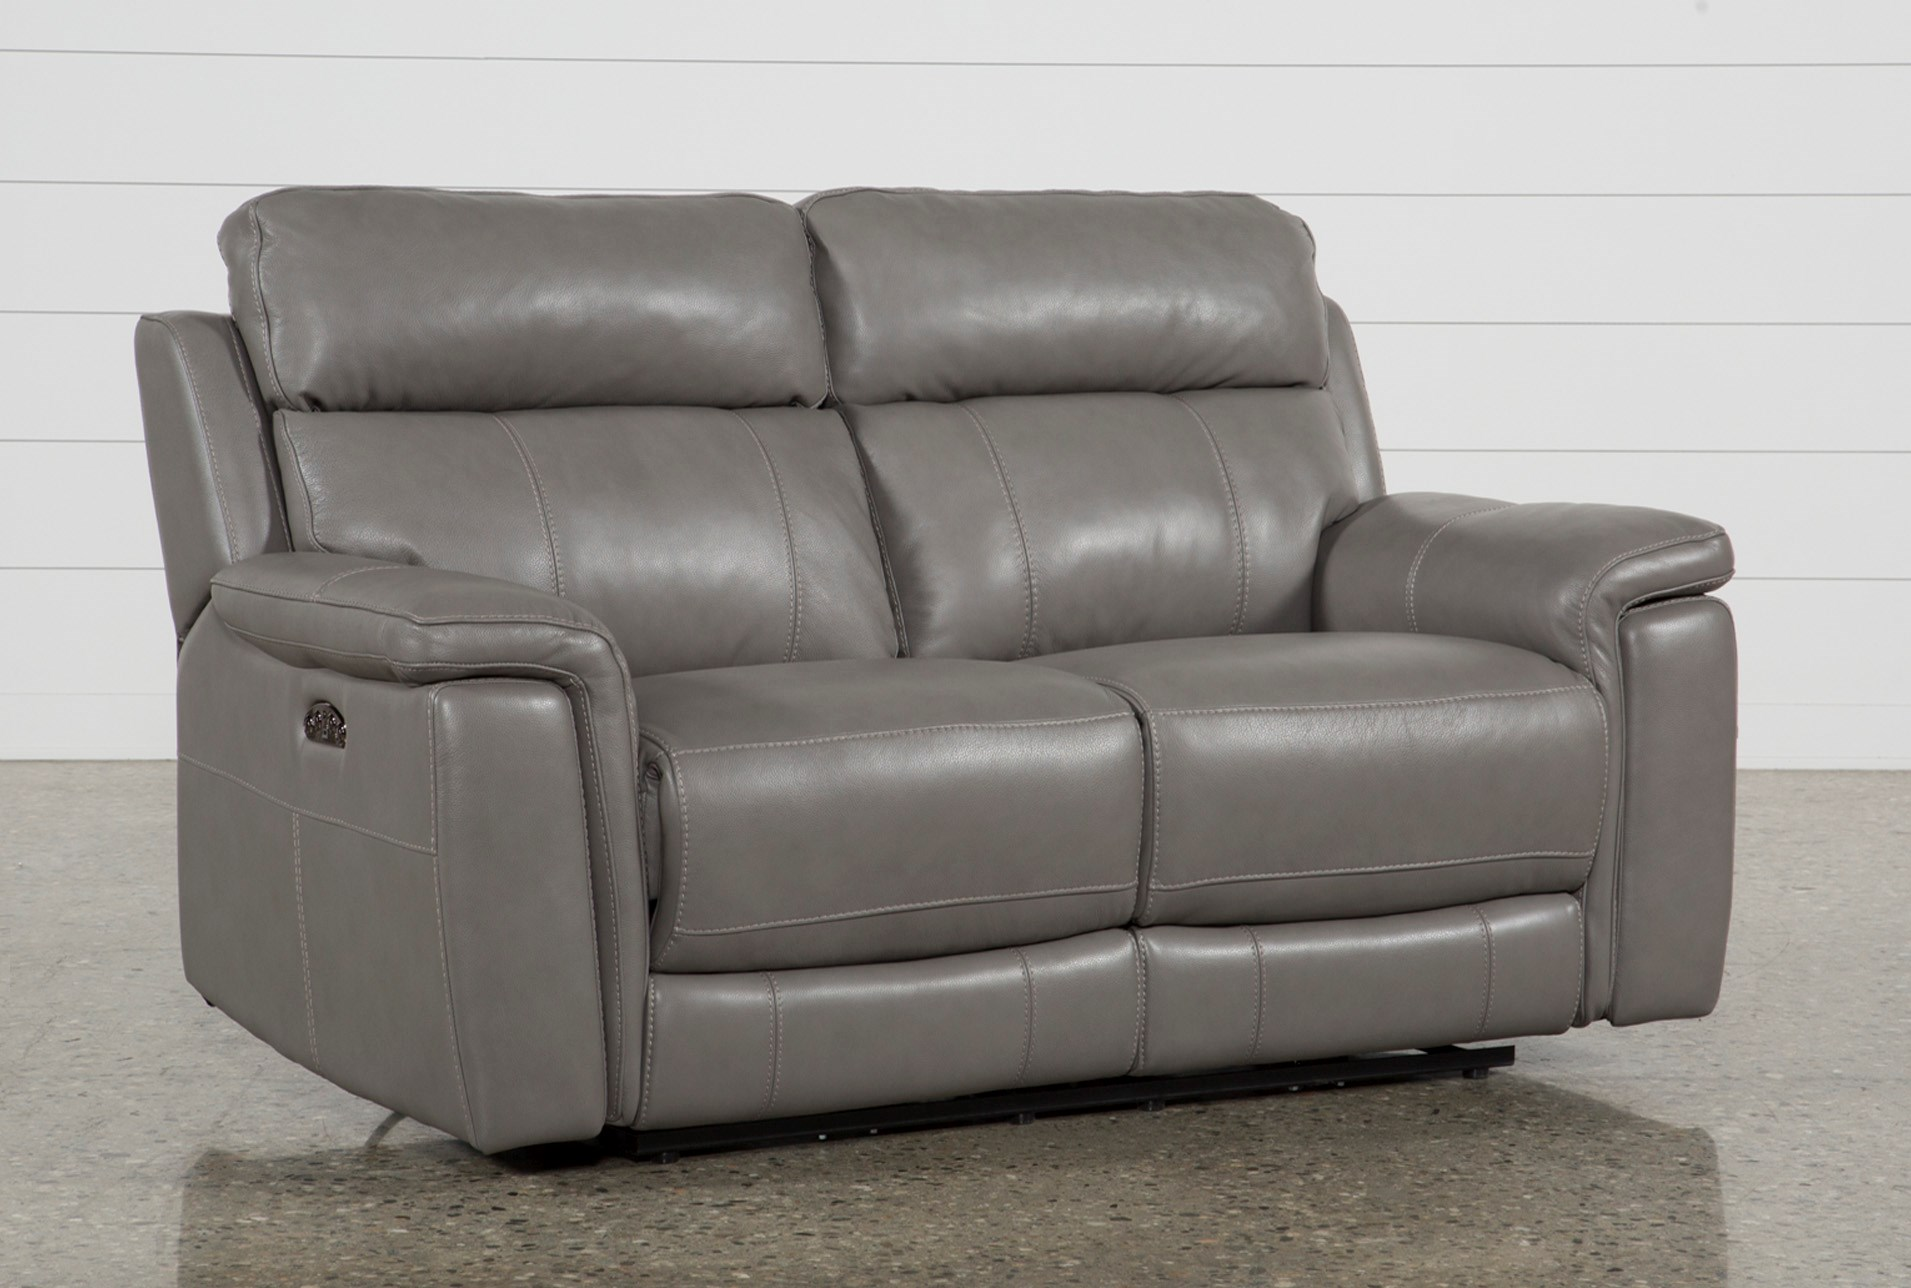 grey leather recliner. Dino Grey Leather Power Reclining Loveseat W/Power Headrest \u0026amp; Usb (Qty: 1) Has Been Successfully Added To Your Cart. Recliner Y